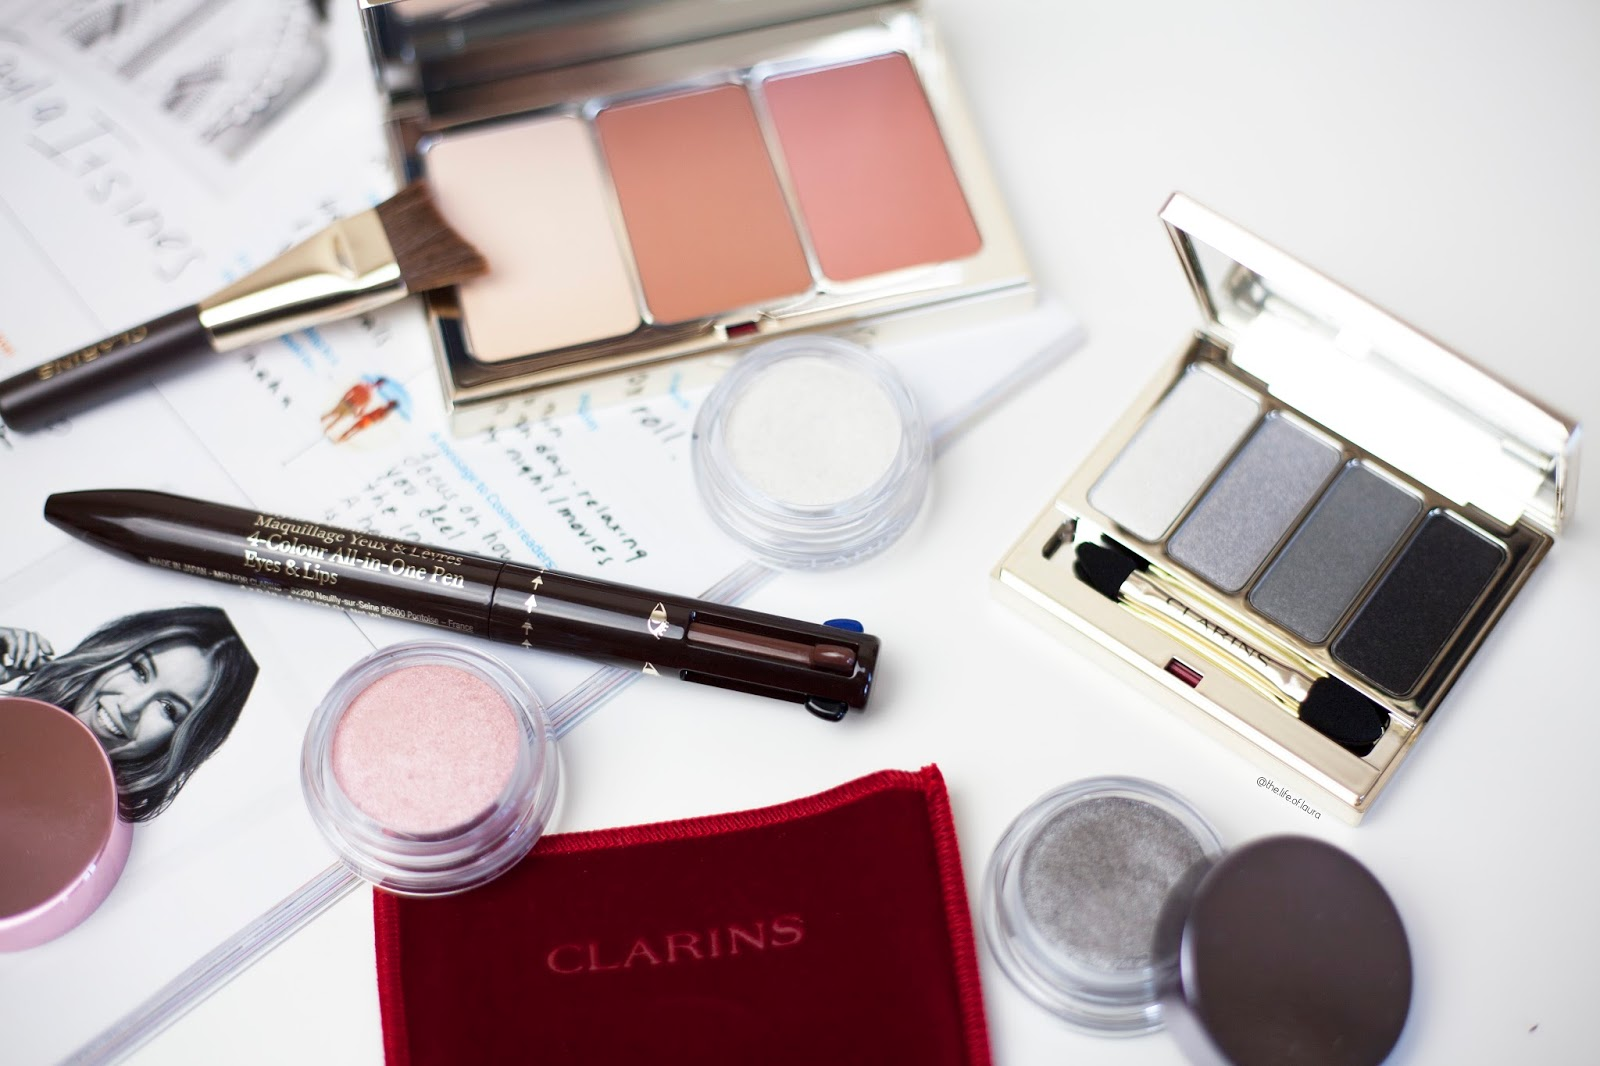 Clarins Spring Make Up